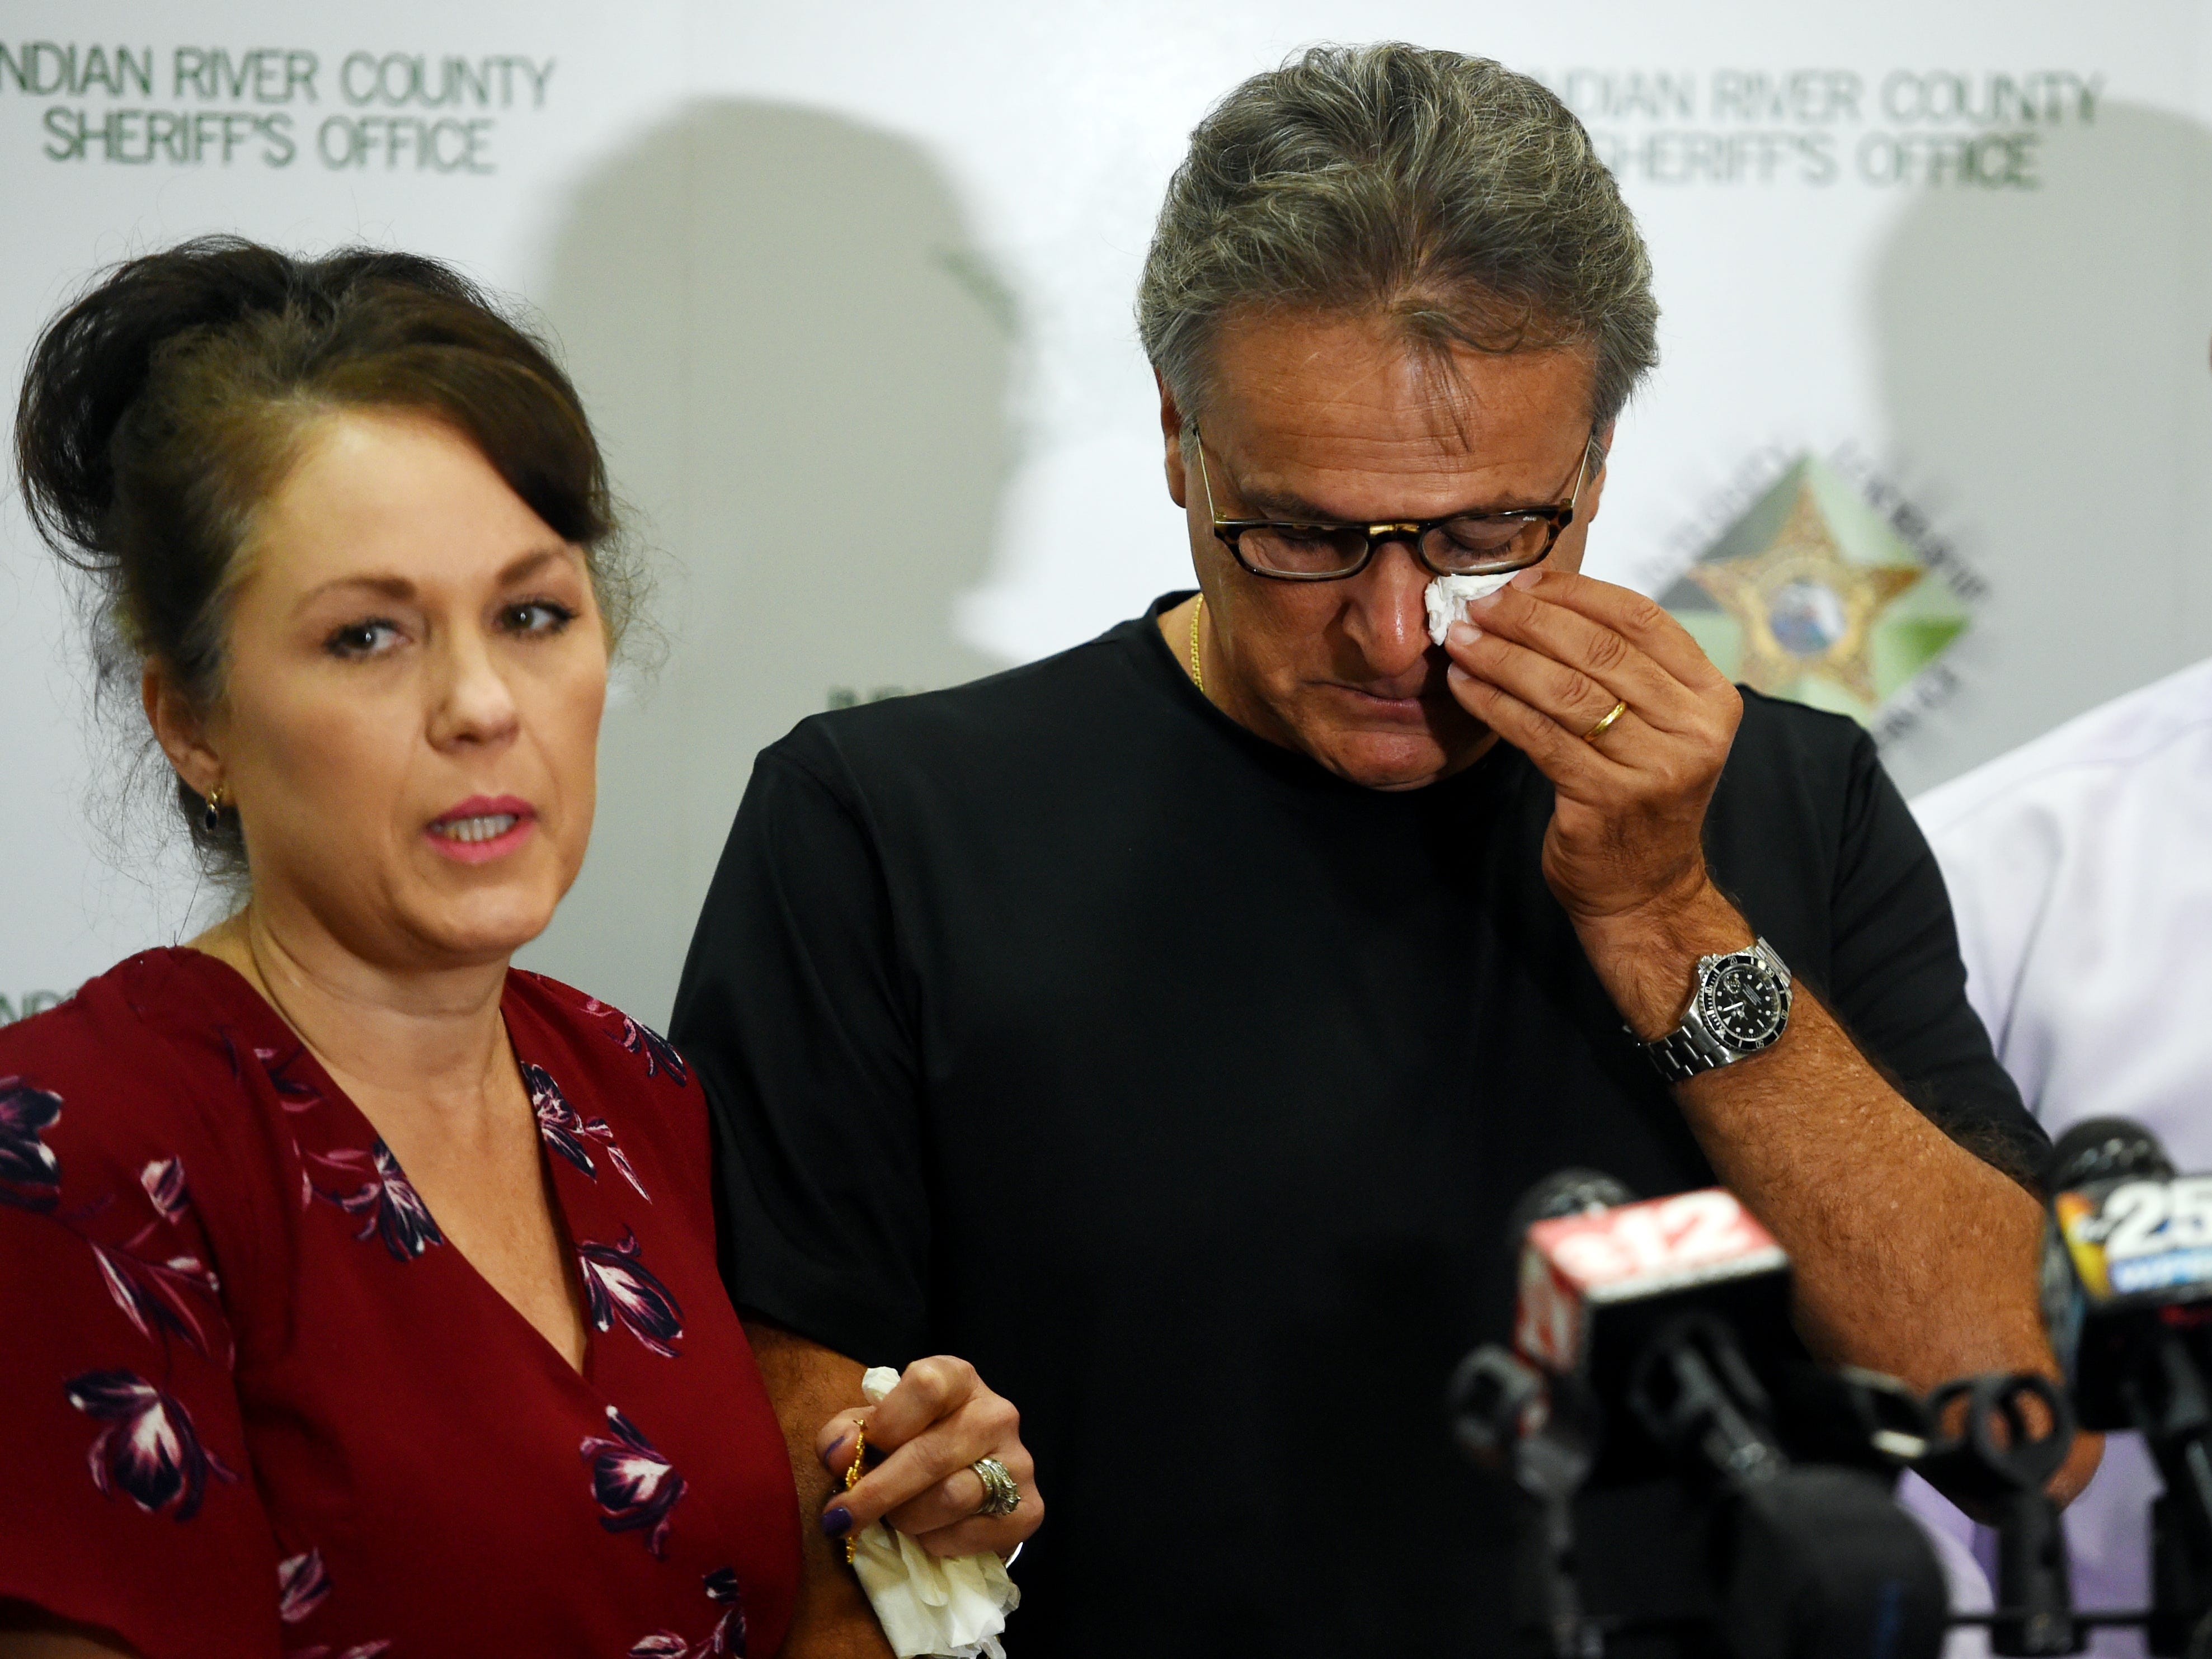 "An emotional Patrick Tomassi wipes tears away from his eyes as he and daughter-in-law Cary Baker make another plea to the public for information concerning the disappearance of Susy Tomassi, 73, during a press conference at the Indian River County Sheriff's Office on Tuesday, Aug. 7, 2018. Susy Tomassi, who has dementia, walked away from the family restaurant, Quilted Giraffe, and was last seen on security cameras in South Vero Square shopping plaza. ""The case is active, it's not in any way cold, it's being investigated daily,"" said Detective Mike Dilks, the lead on the investigation. ""This is in no way a cold case, this is not a case on the back burner. This case is front and center of my career."" The family is offering a $15,000 reward for her safe return."